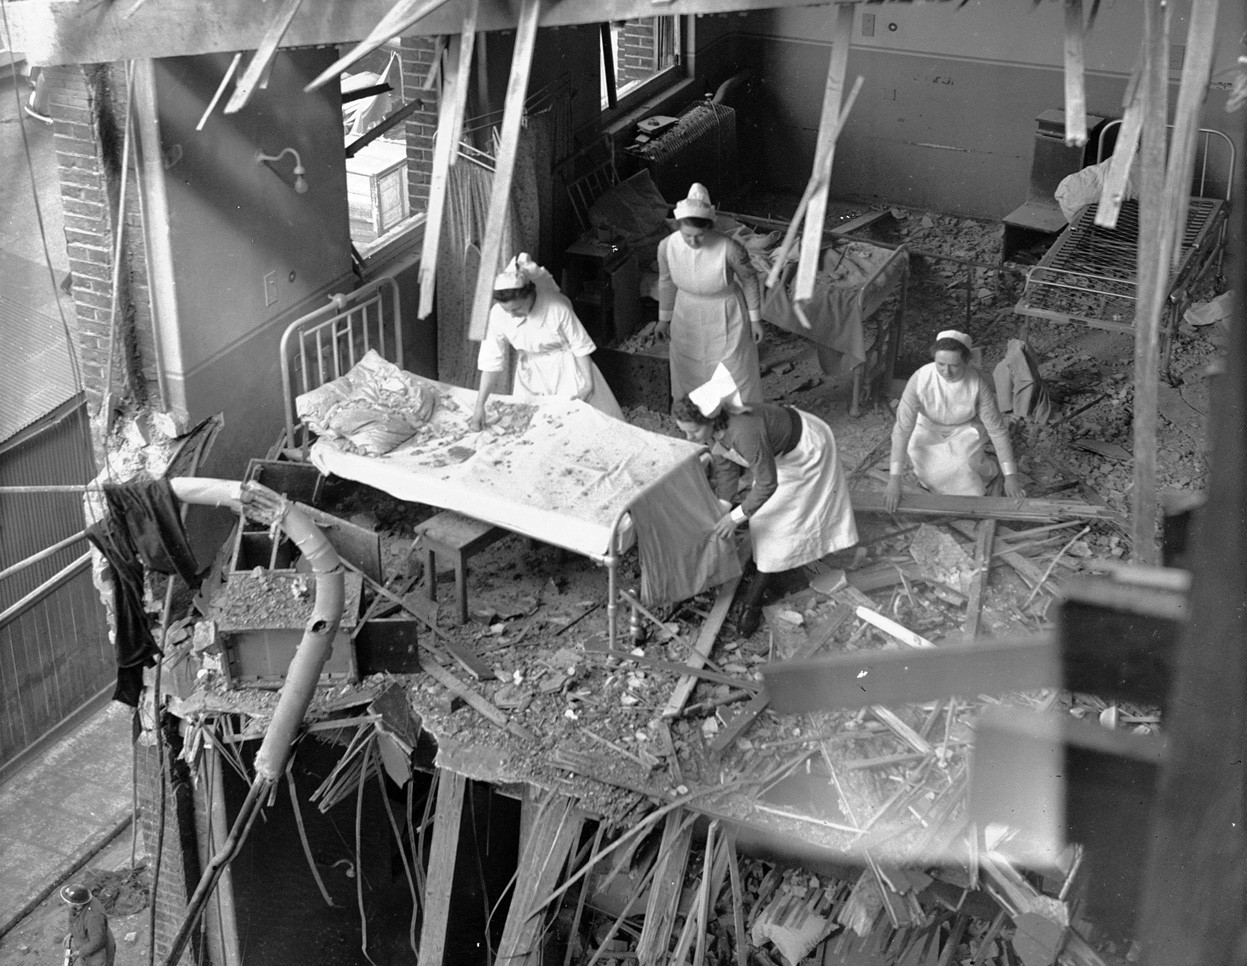 Nurses clearing debris from one of the wards in St. Peter's Hospital, Stepney, East London, on April 19, 1941 after a German bombing raid   So freaking cool